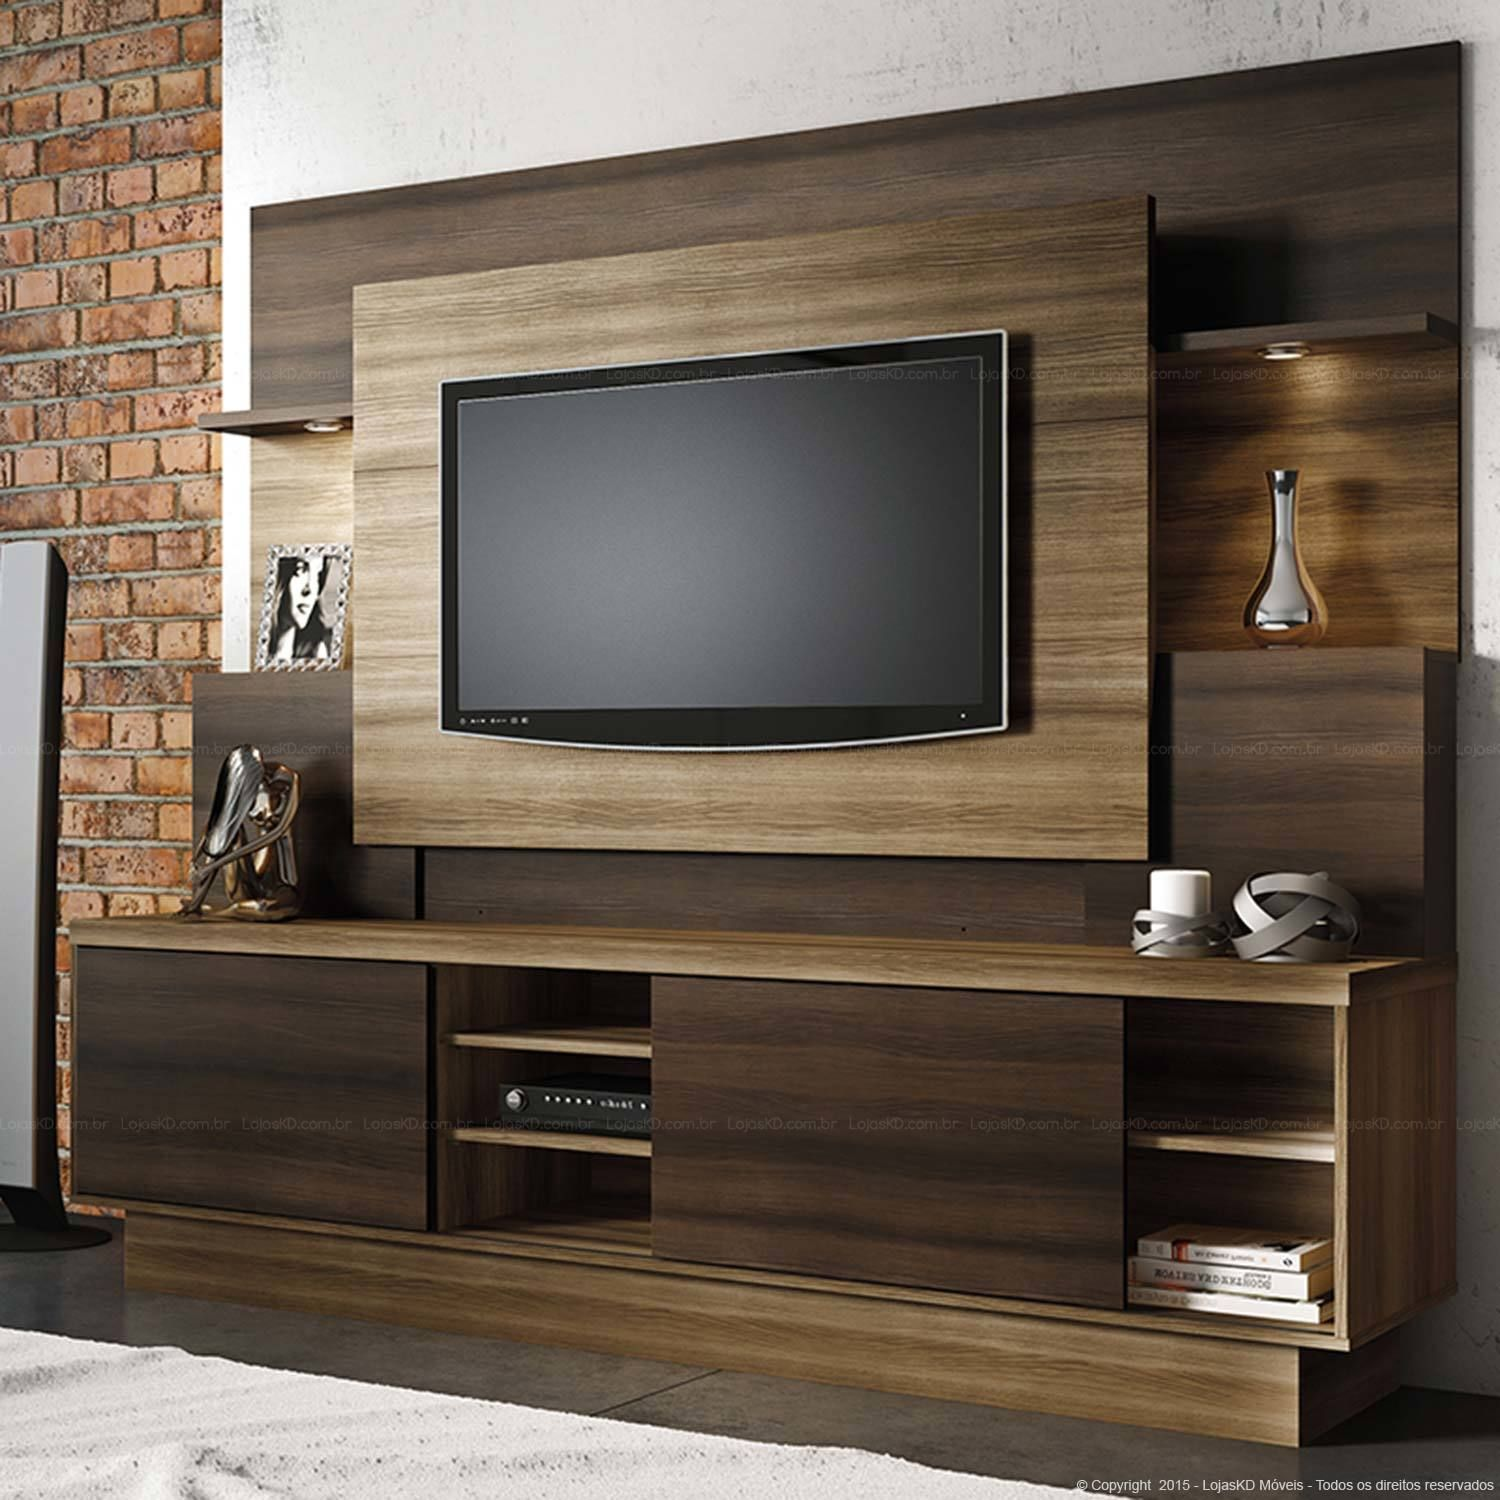 Estante Home Theater para TV at Polegadas Aron Capuccino Wood